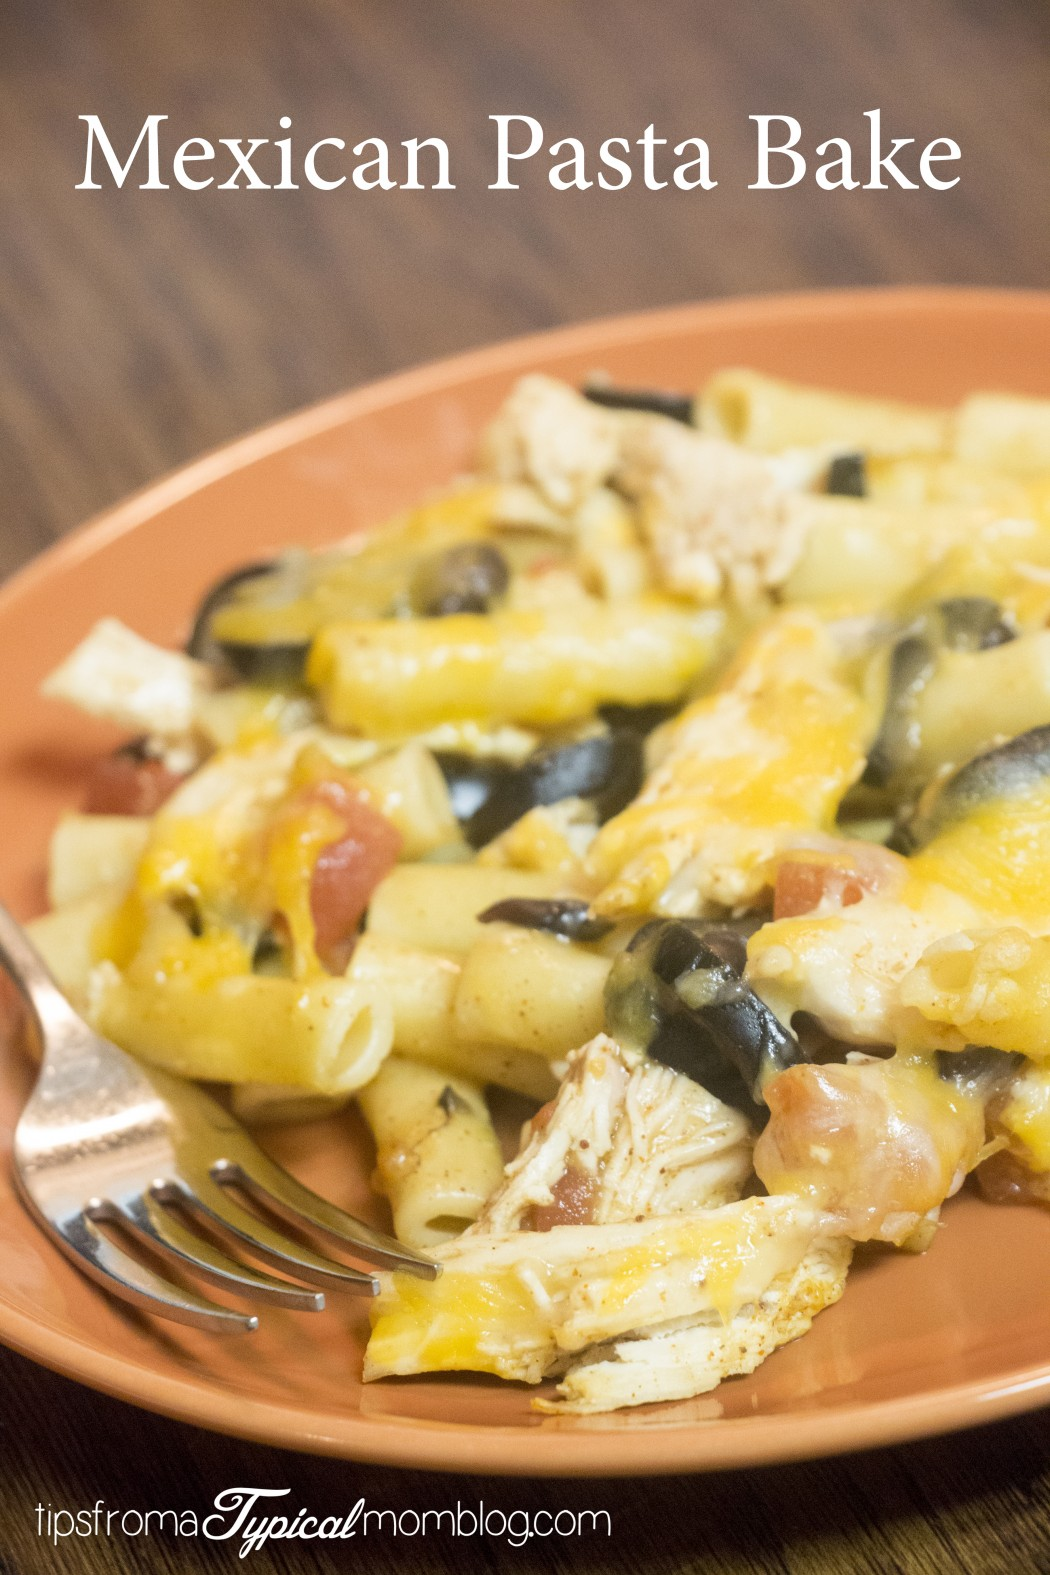 Mexican Pasta Bake Casserole - Tips from a Typical Mom